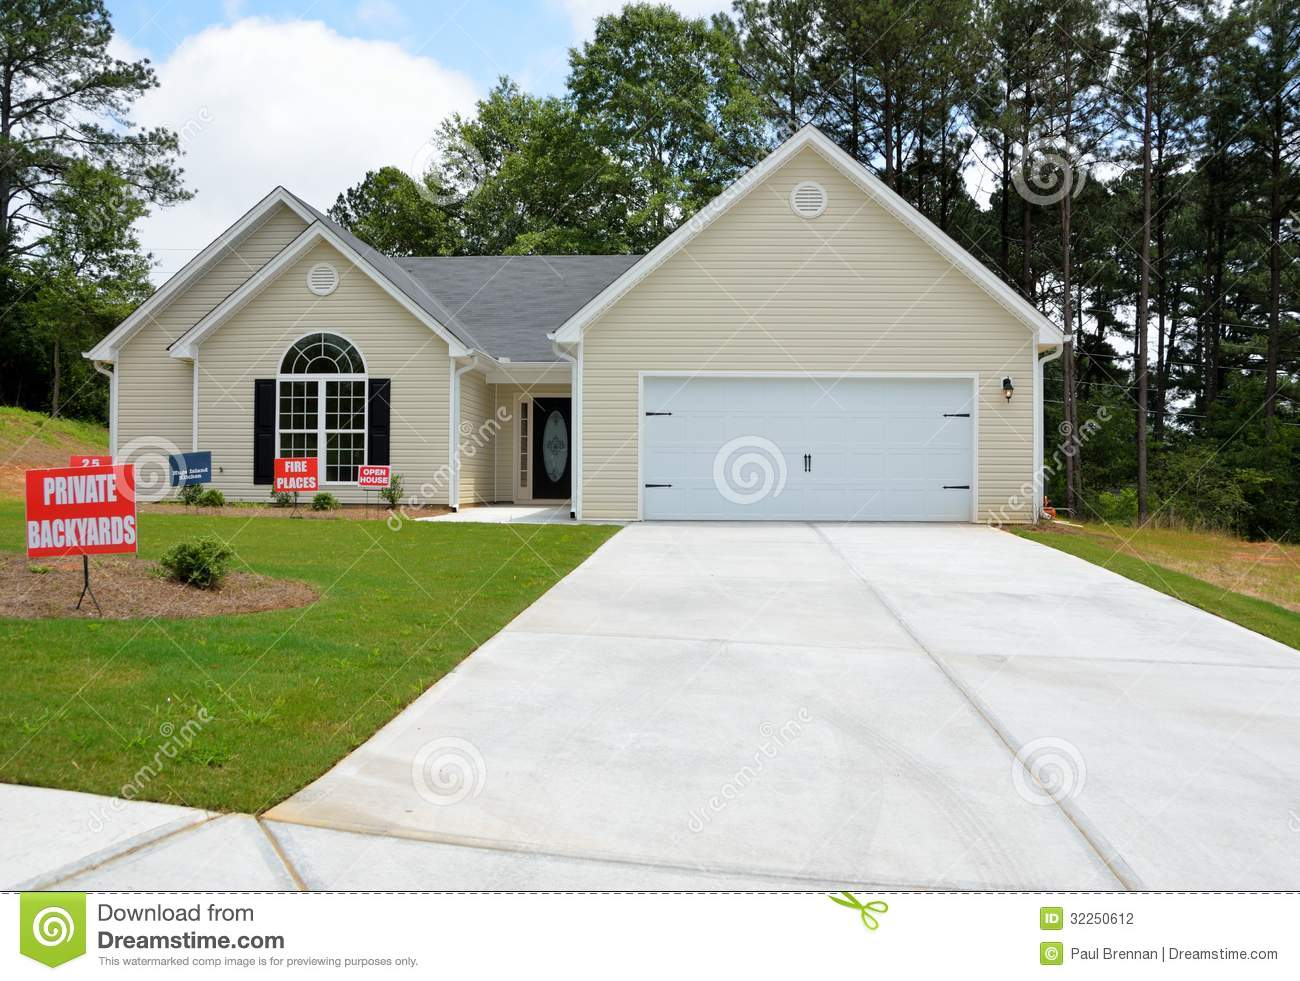 Exceptional One Story Garages For Sale: Detached New Home Stock Photography